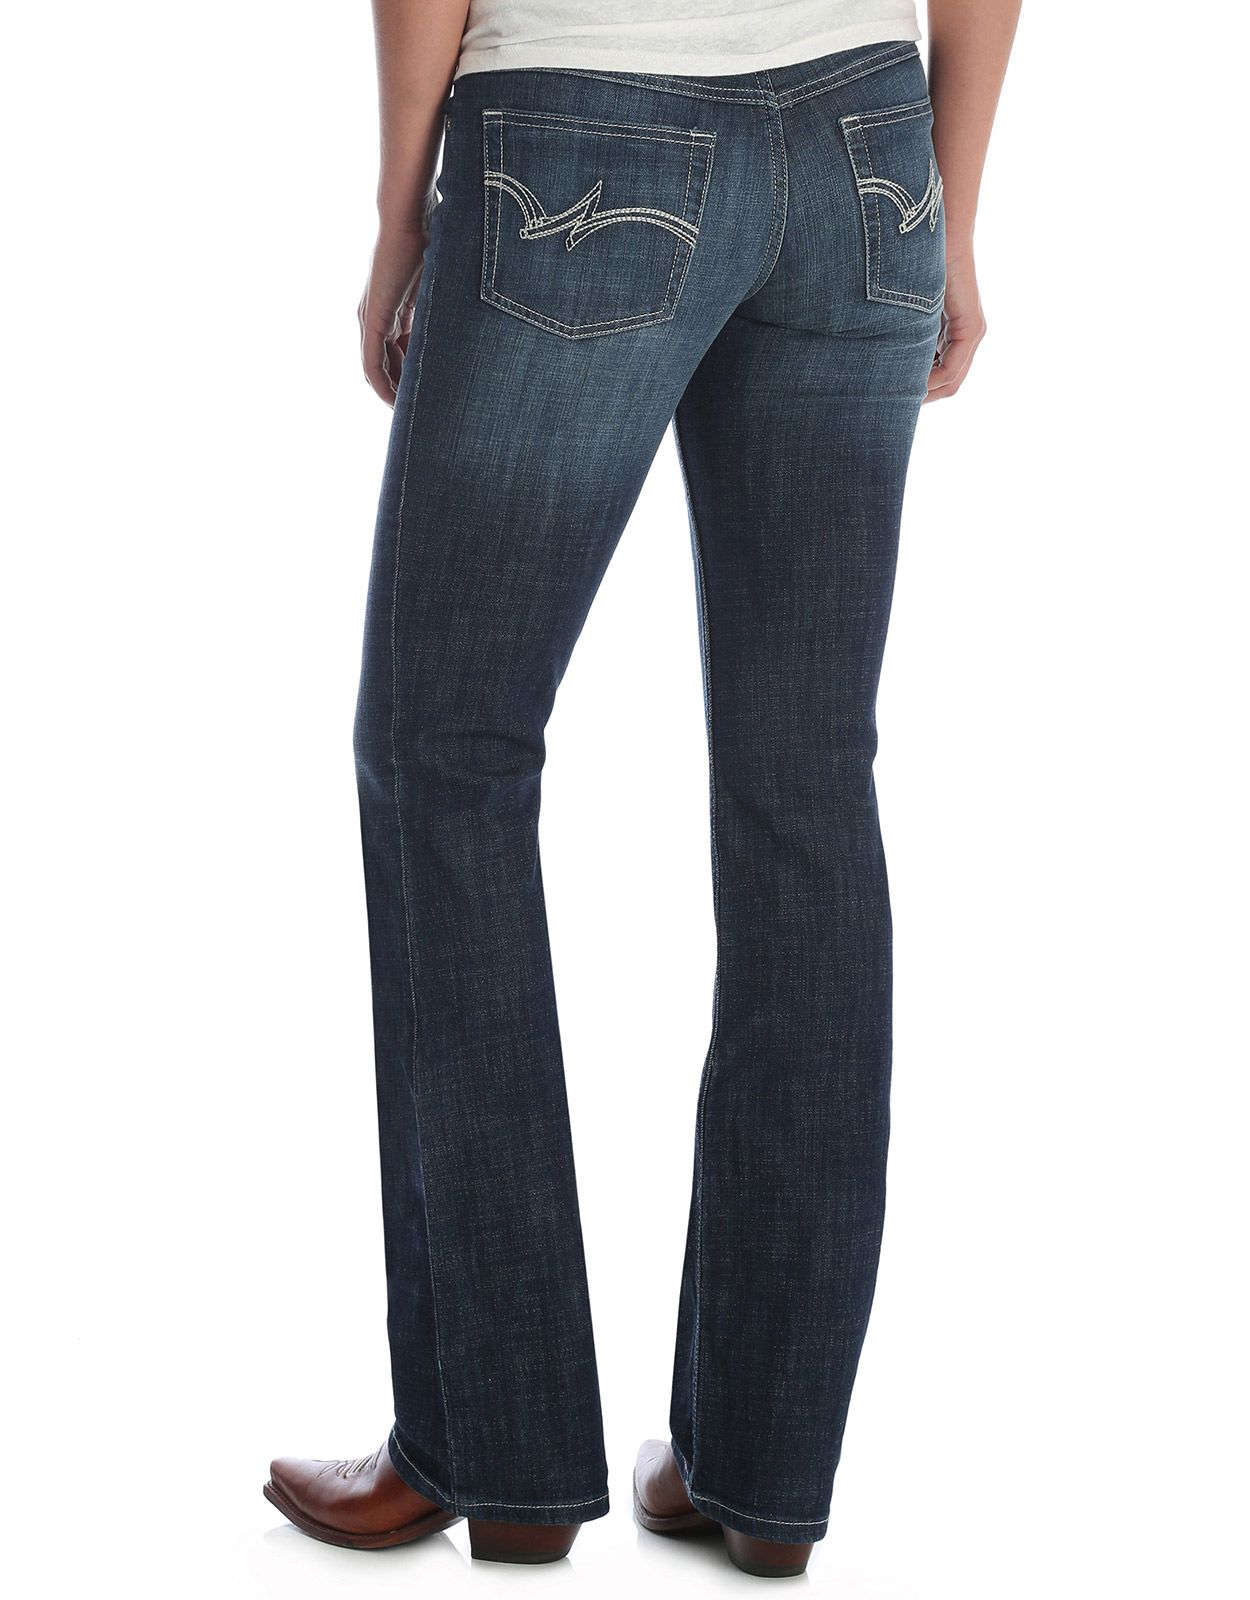 Wrangler Women's Mae Bootcut Stretch Mid Rise Slim Fit Boot Cut Jean - MS Wash